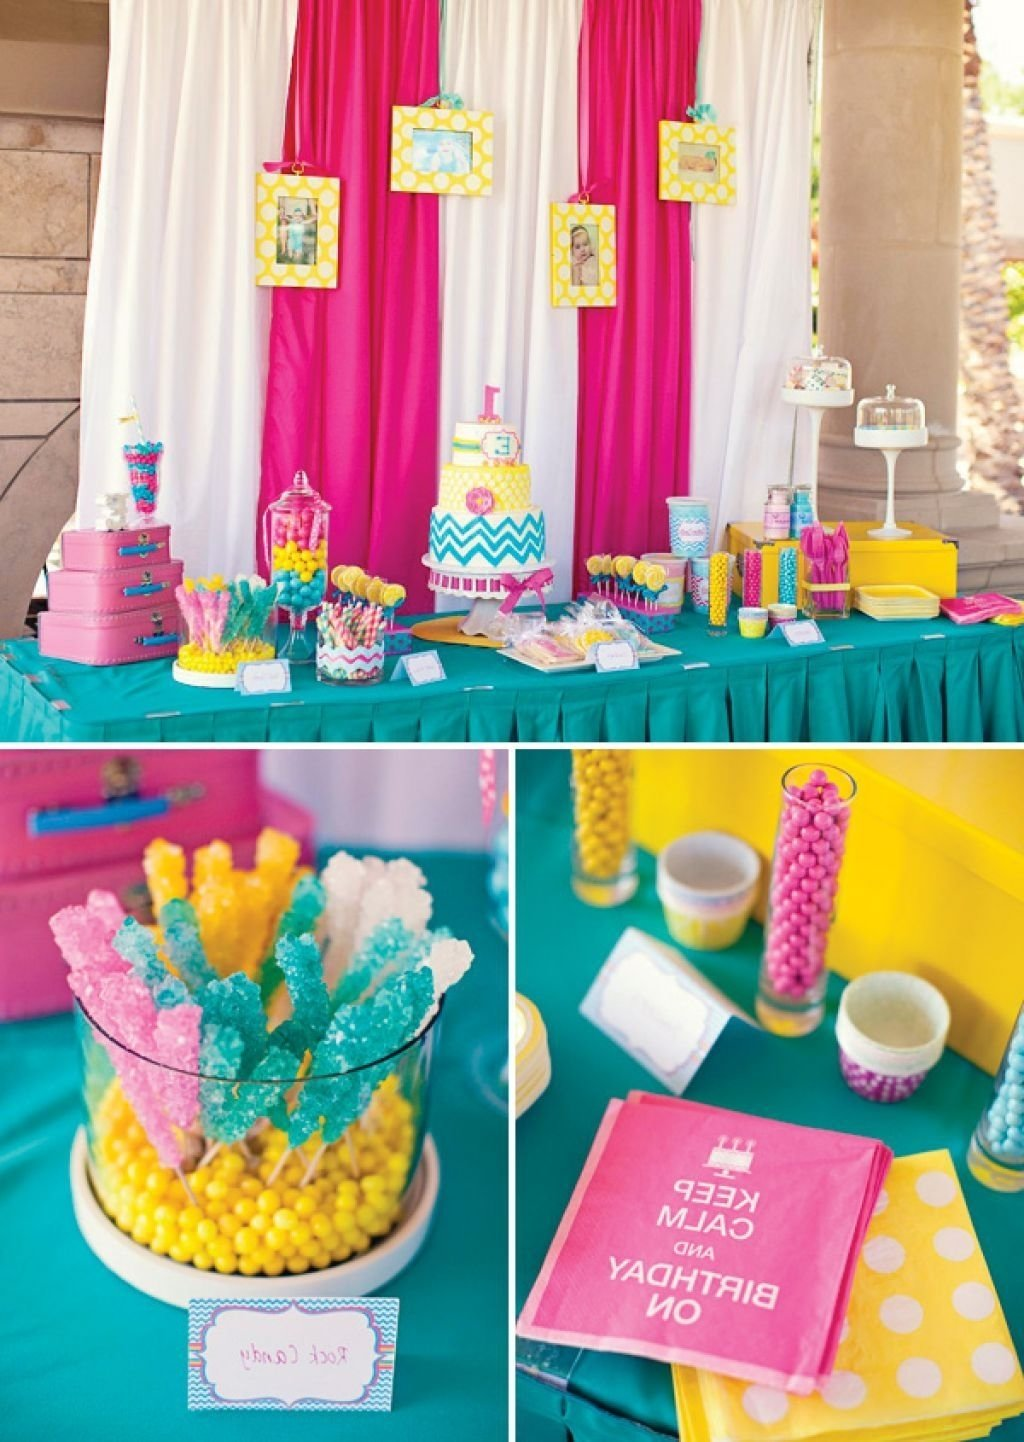 10 Gorgeous 7 Yr Old Birthday Party Ideas Outdoor Decorations Google Search Madeline 16